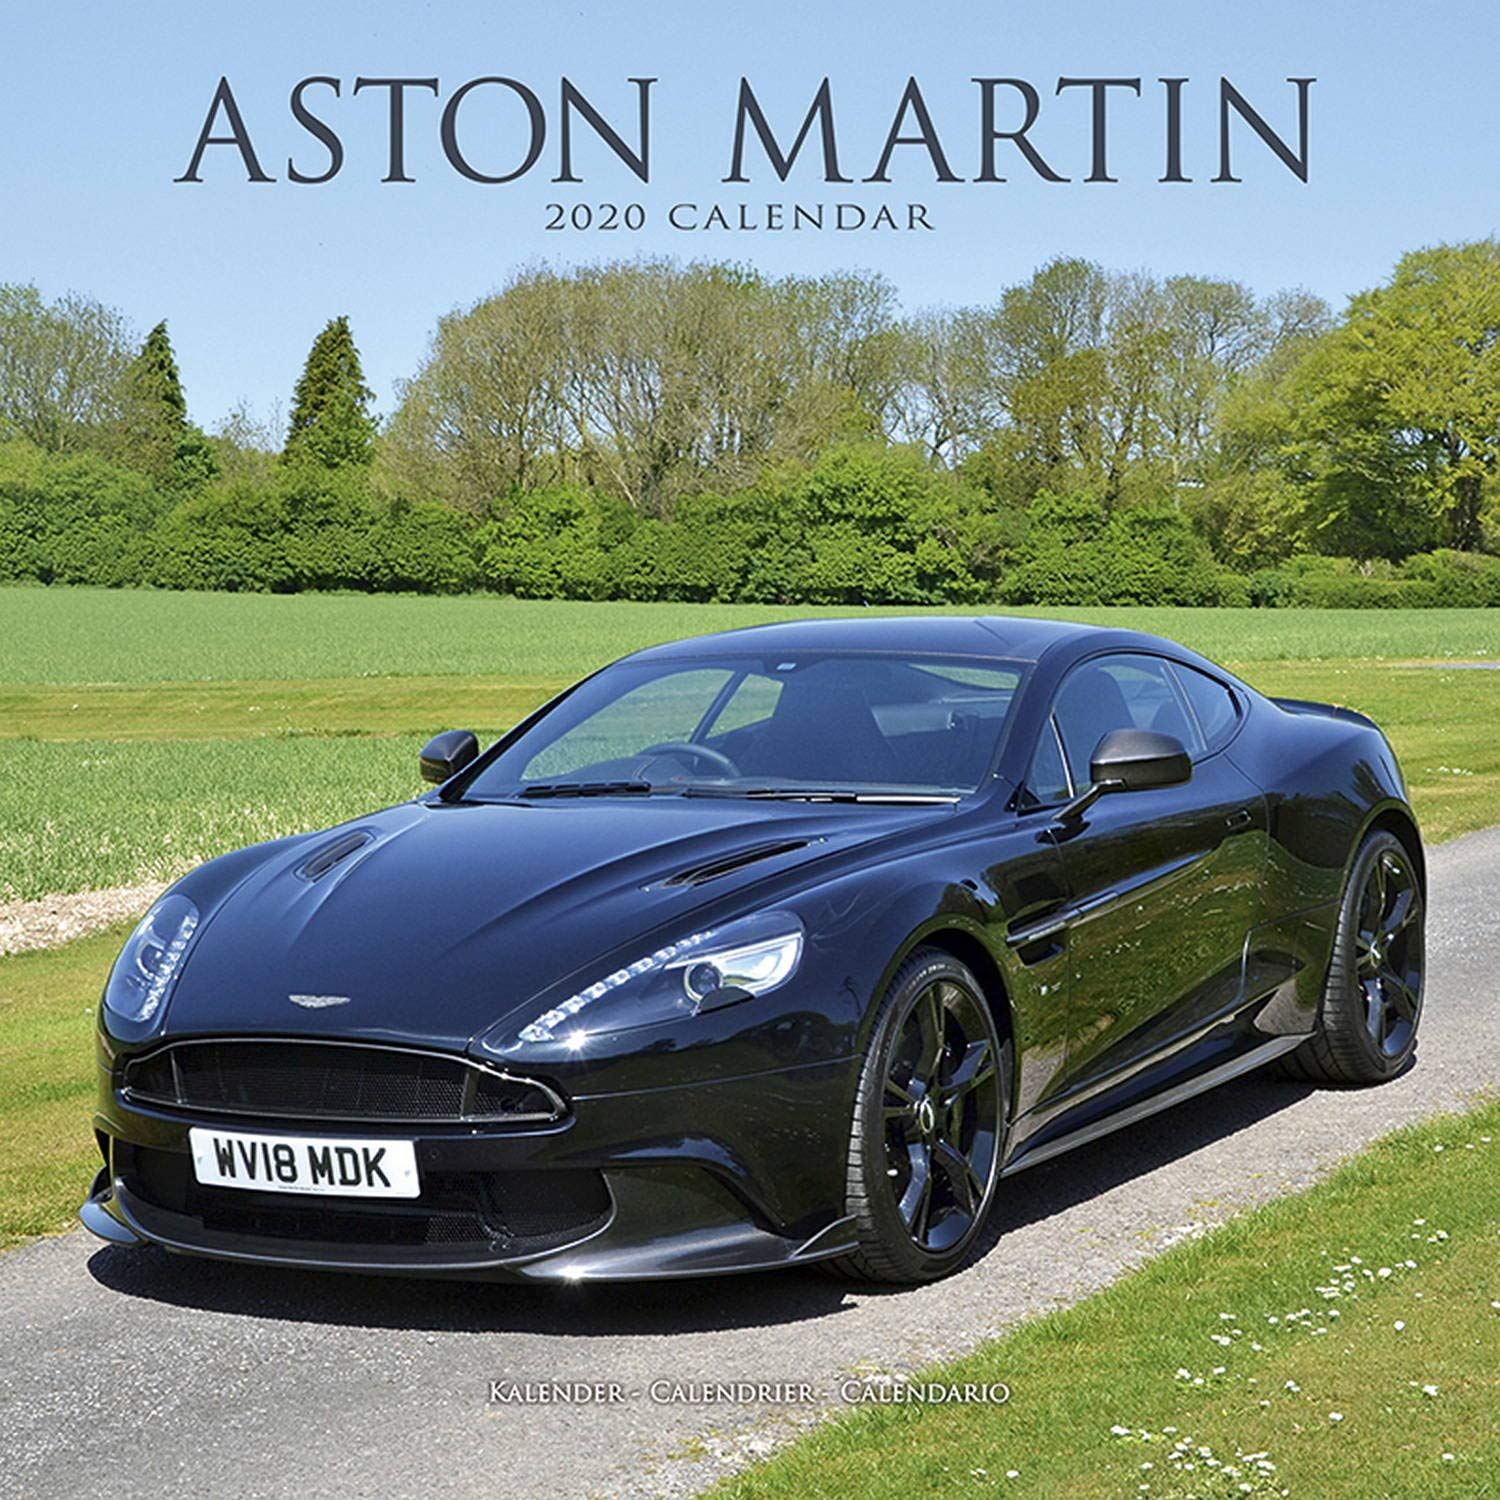 Calendrier Fun Car 2020.Aston Martin Calendar Calendars 2019 2020 Wall Calendars